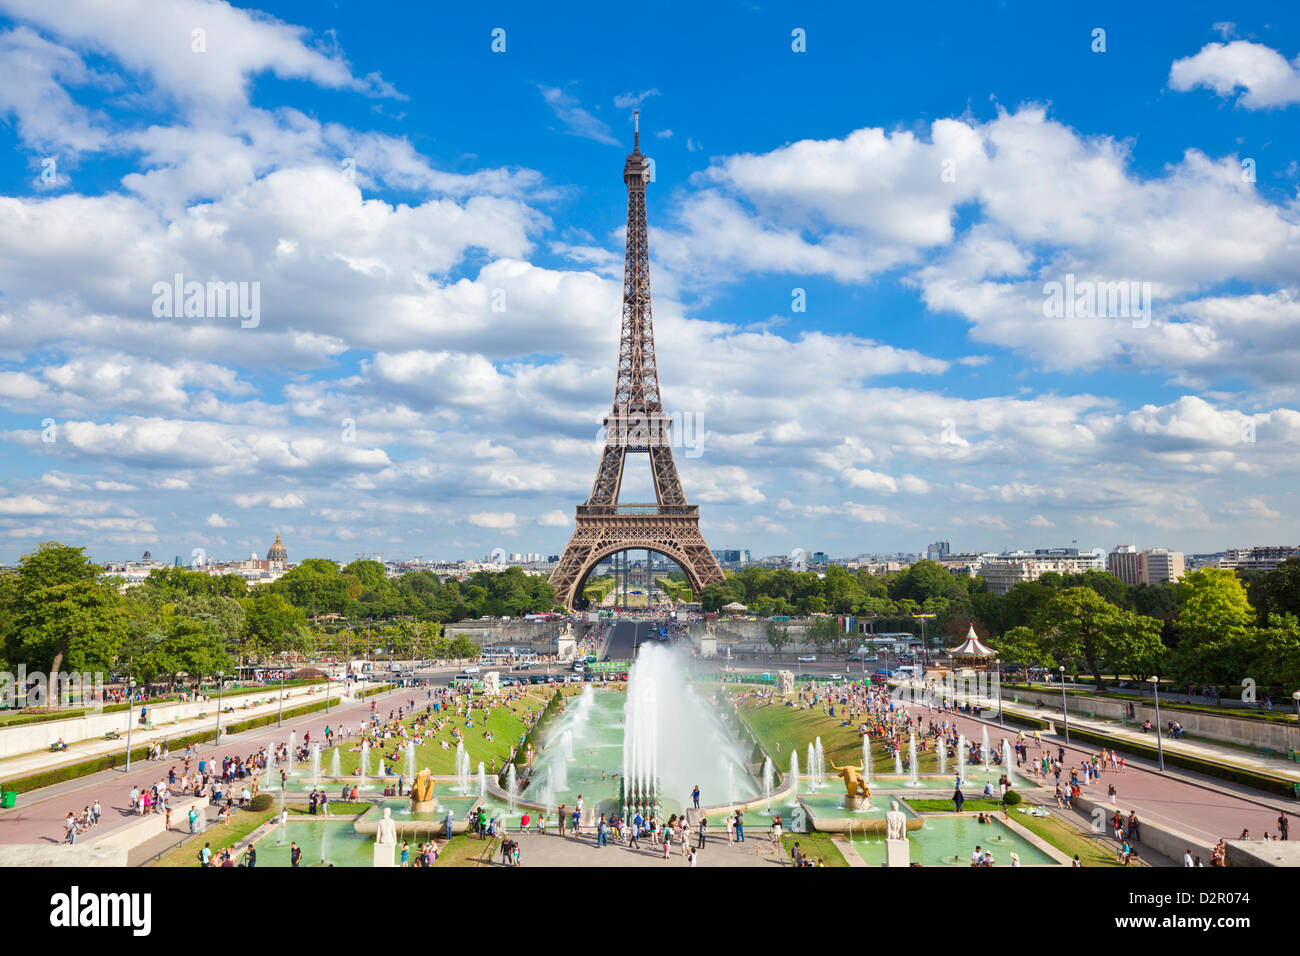 La Tour Eiffel et le Trocadéro Fontaines, Paris, France, Europe Photo Stock